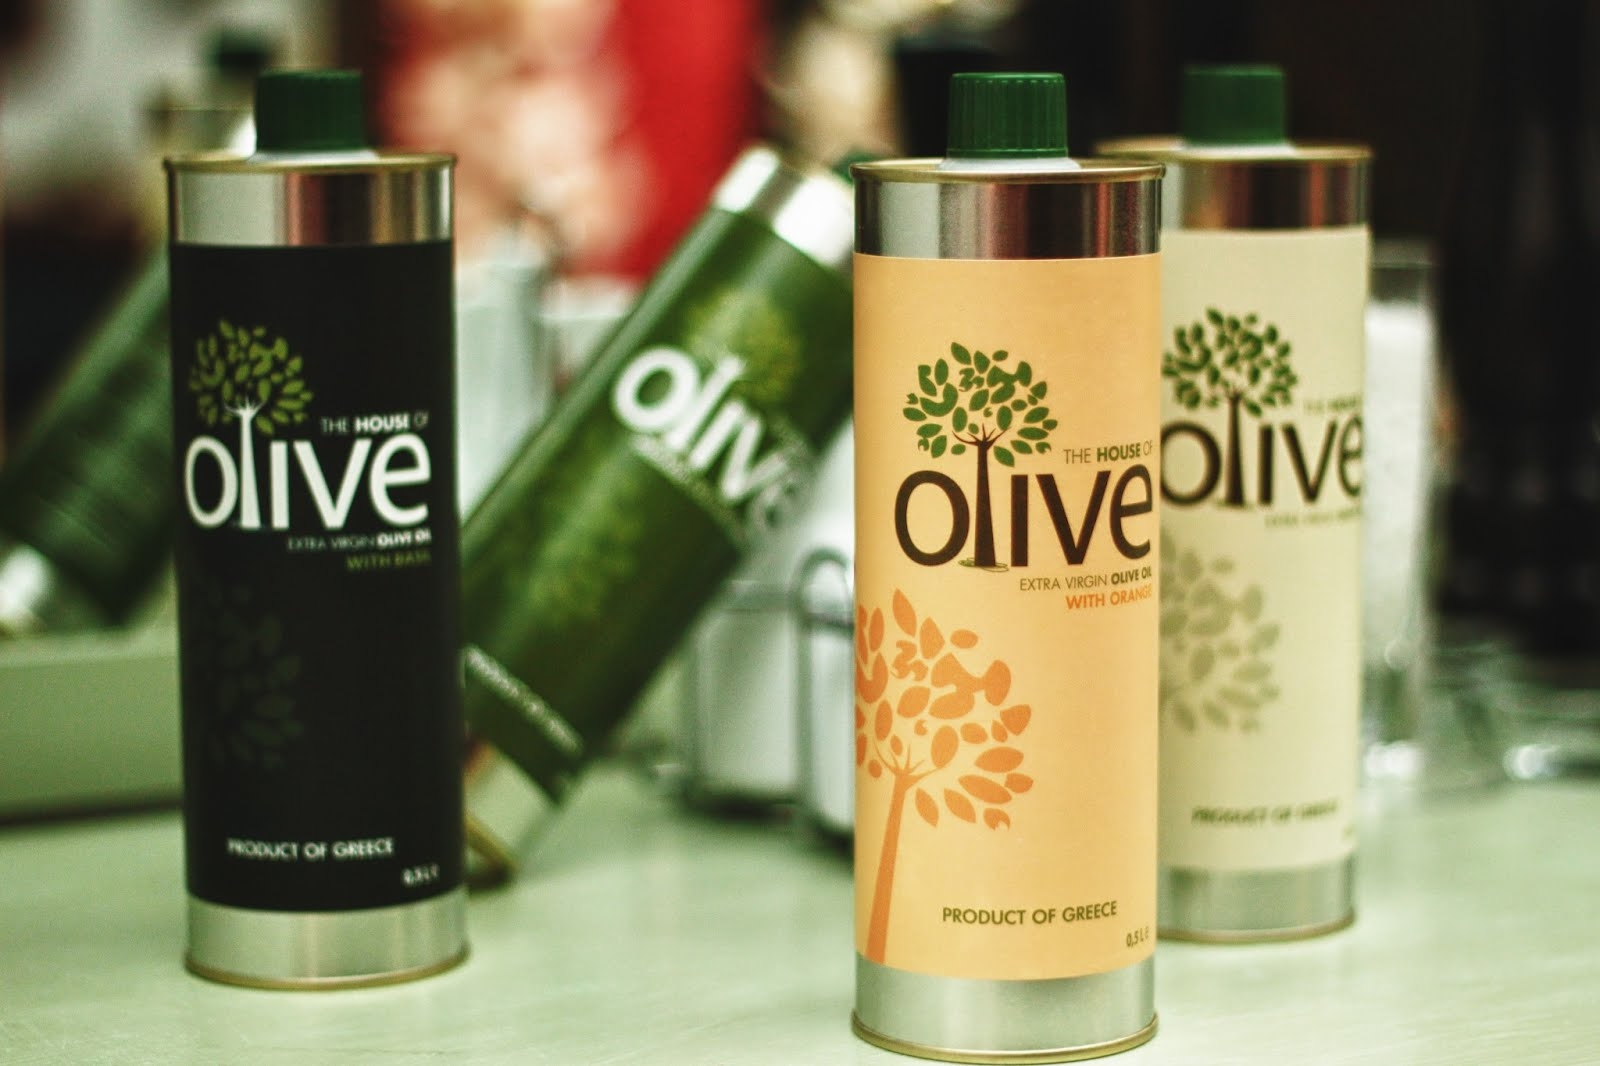 The House of Olive.